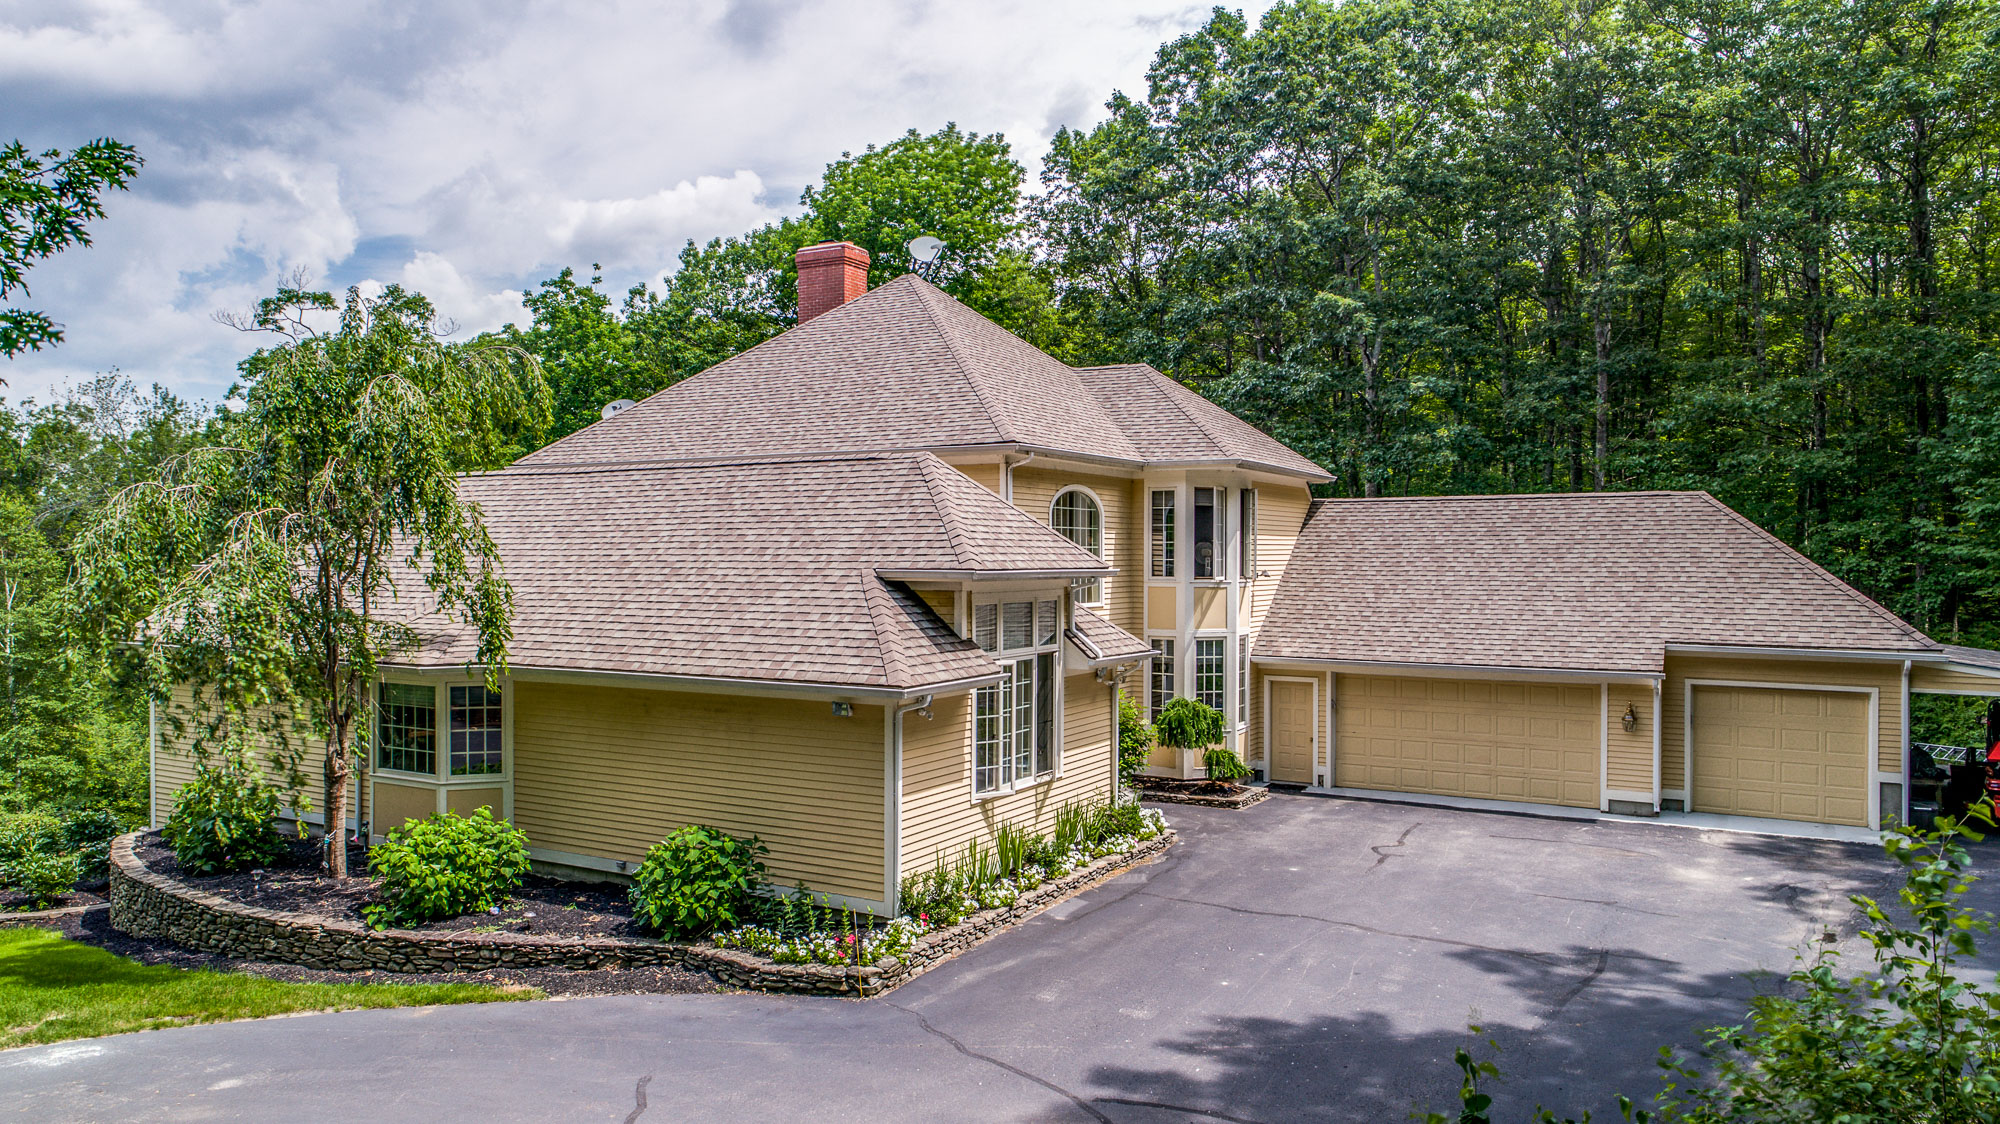 Single Family Home for Sale at Contemporary Waterfront 26 Cobb Road Ashburnham, 01430 United States